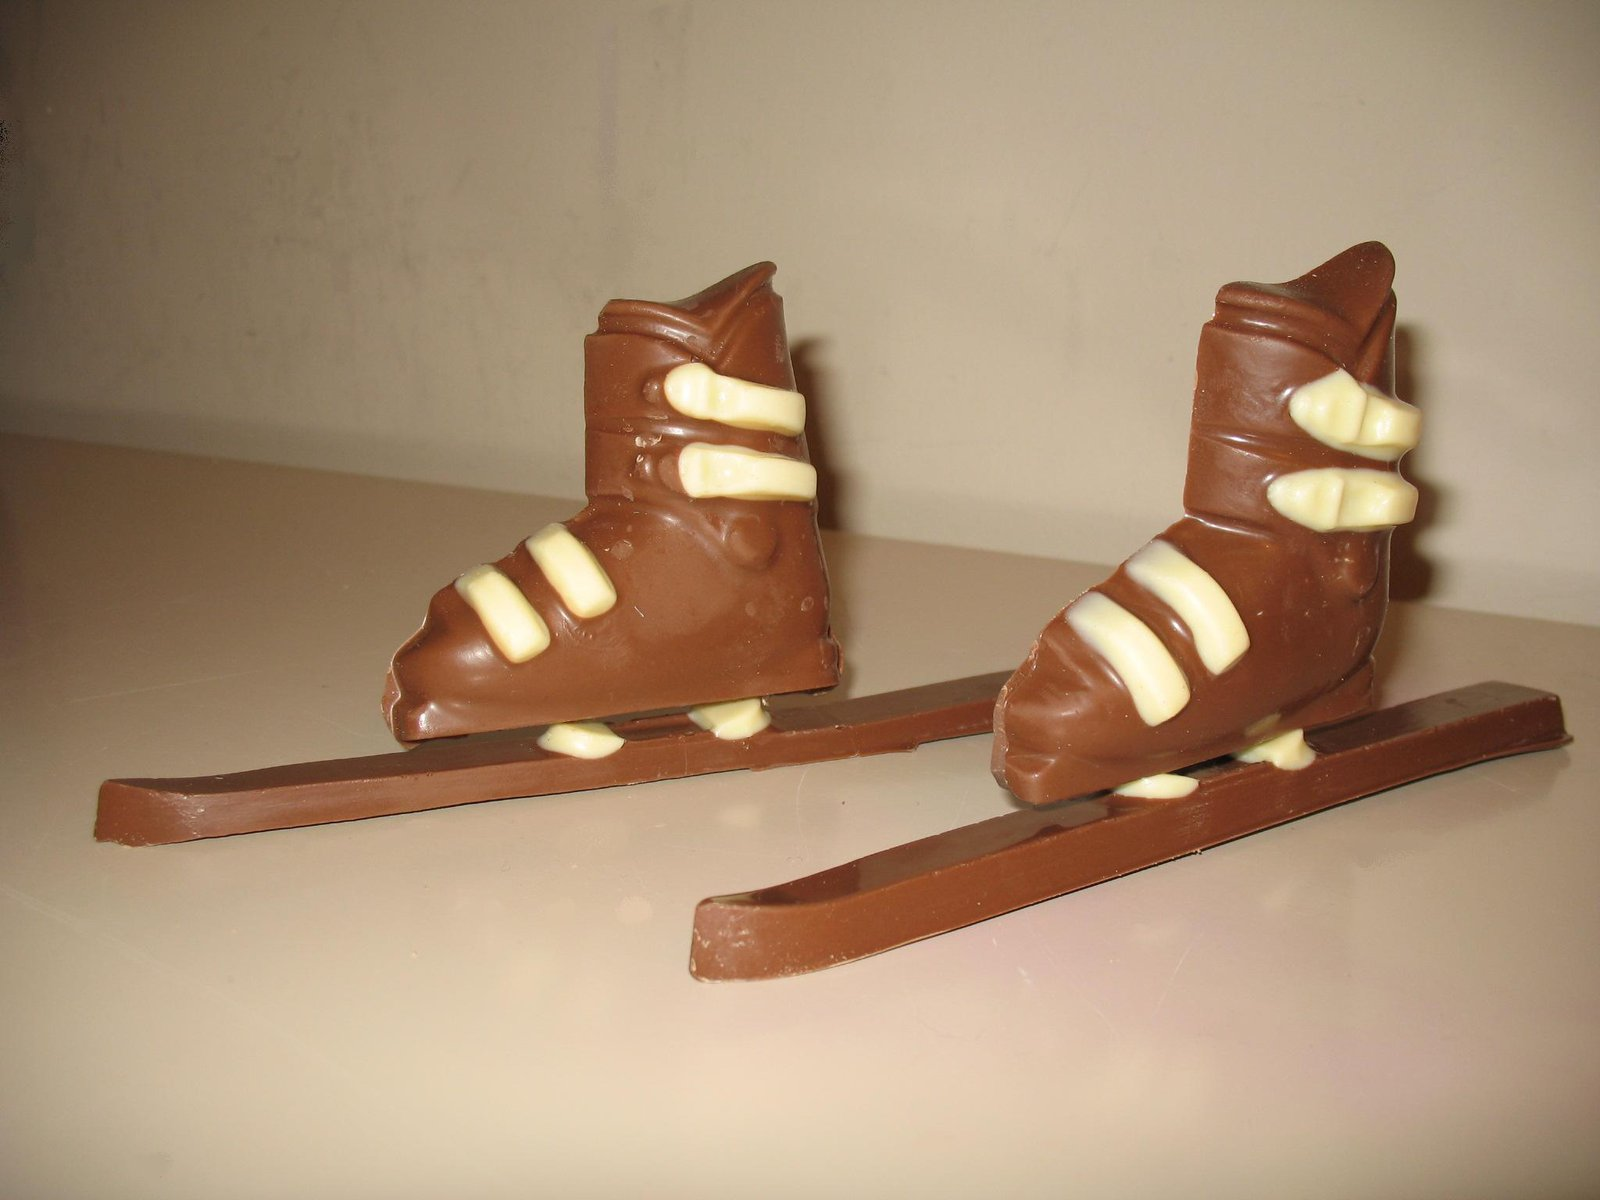 Chocolate Skis